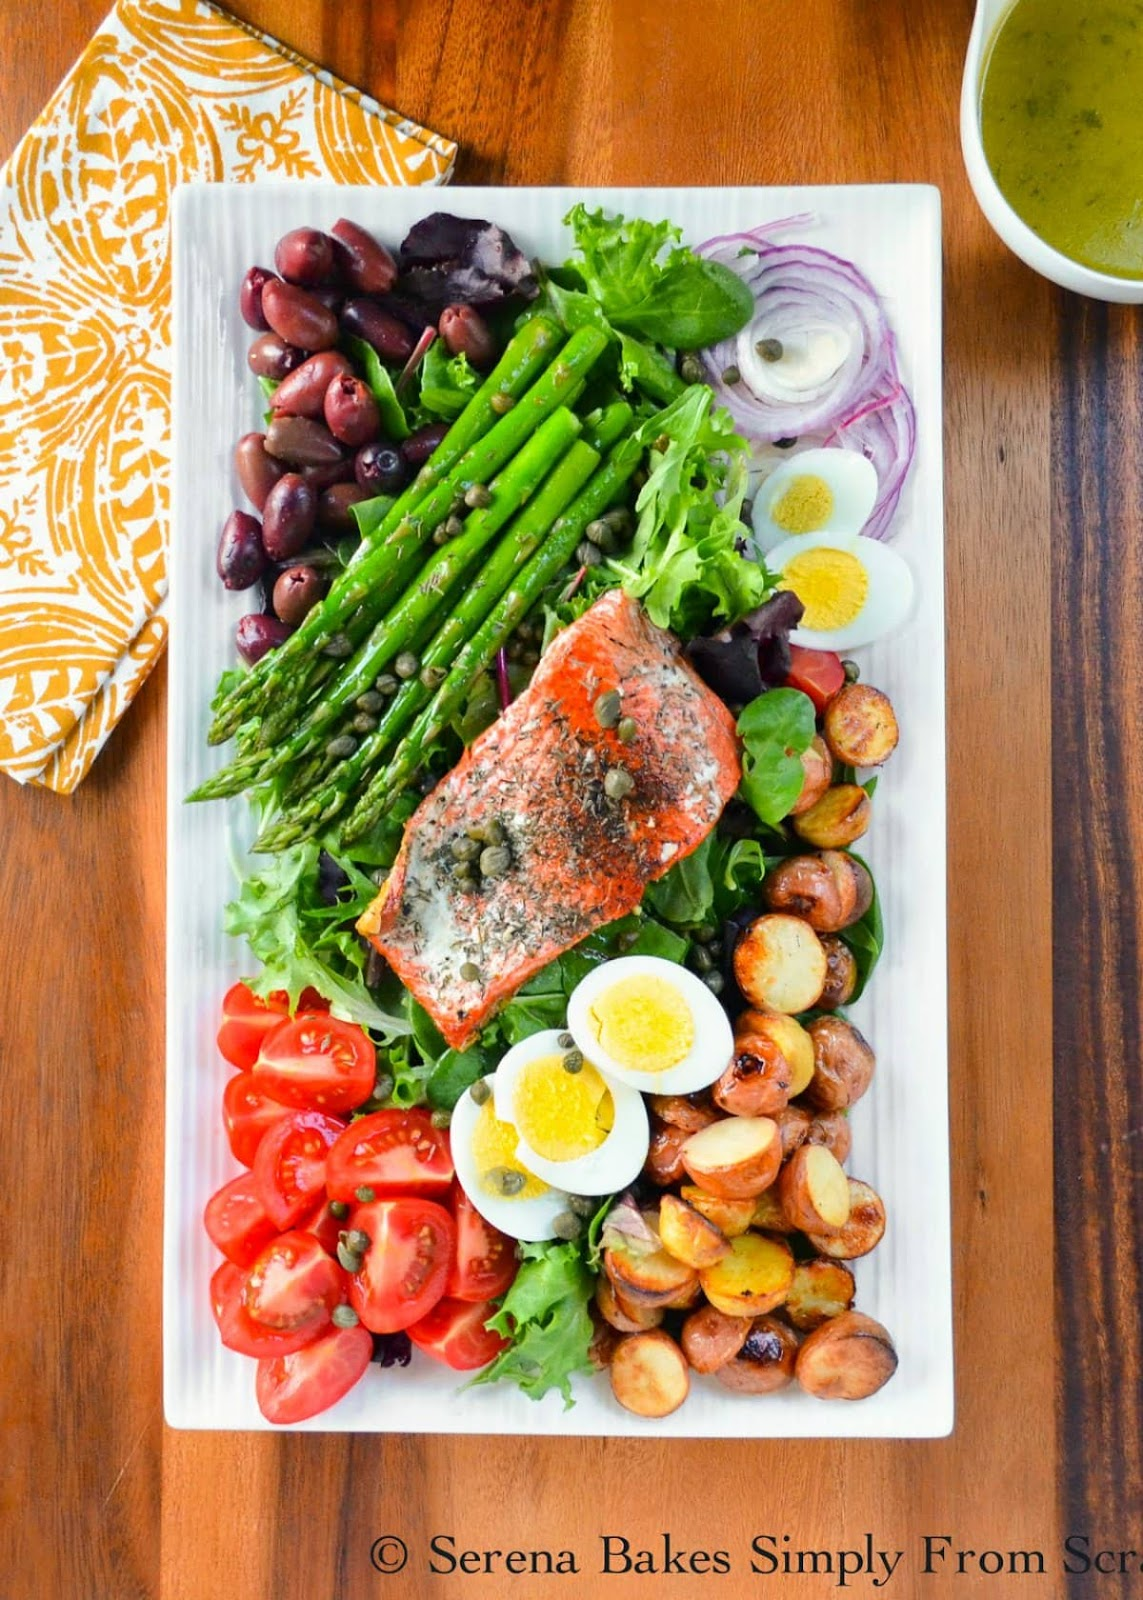 Salmon Nicoise Salad with lettuce, roasted potato, hard boiled eggs, sliced tomatoes, pan fried salmon, asparagus, kalamata olives, capers, drizzled with white balsamic lemon vinaigrette is a favorite easy healthy lunch or dinner recipe from Serena Bakes Simply From Scratch.